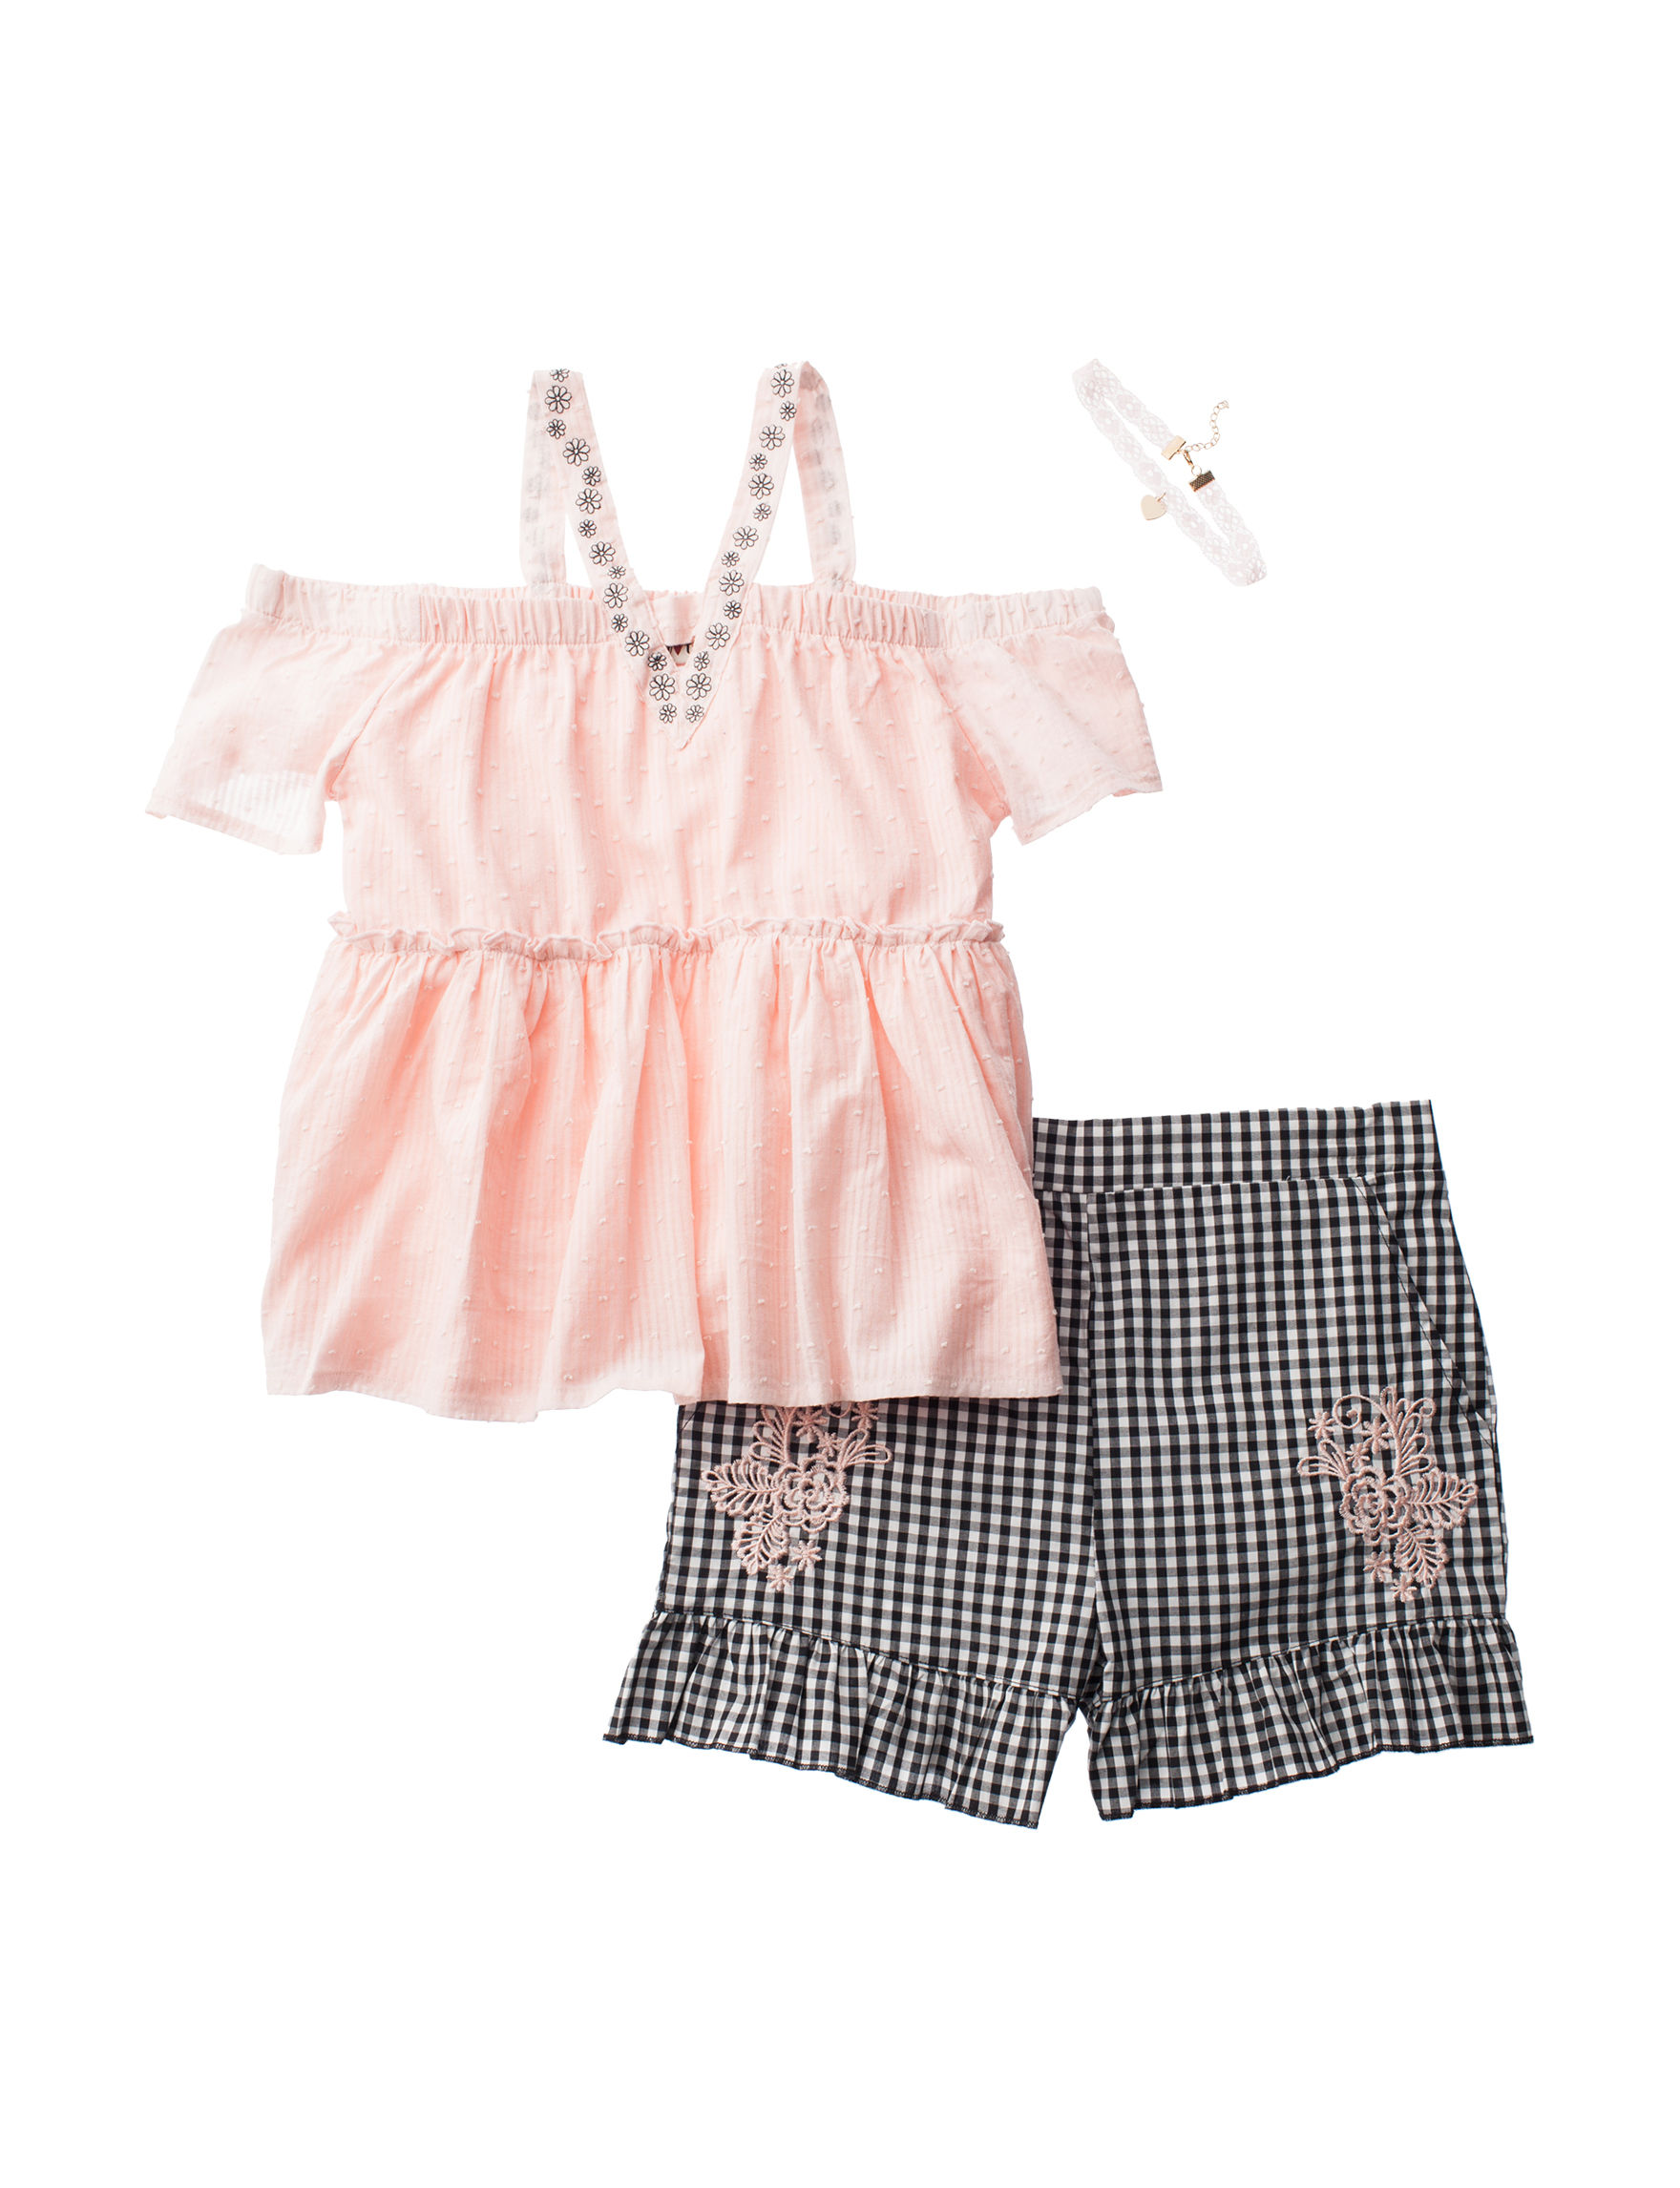 Satin Flowers 2 Pc Cold Shoulder Gingham Top Shorts Set Girls 7